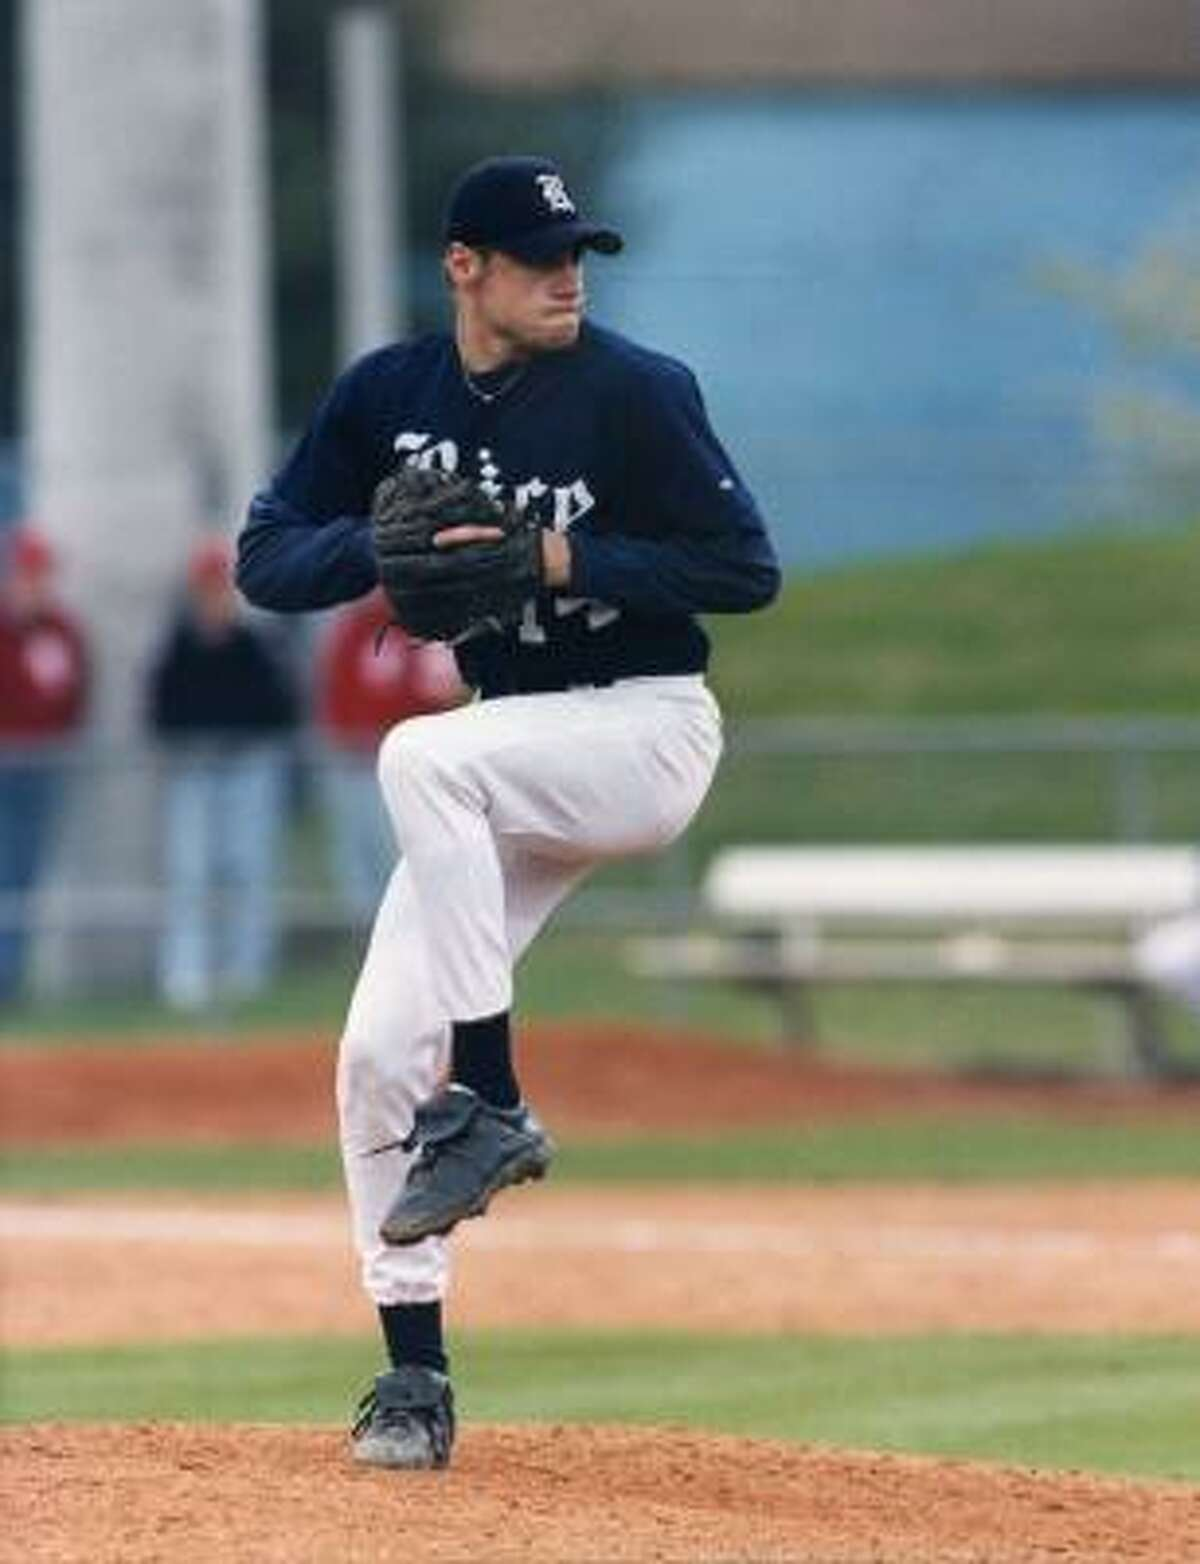 Matt Anderson , RHP. Years: 1995-97. The case for: Anderson merited his selection as the No. 1 pick in the 1997 amateur draft by dominating the collegiate ranks with his 95-plus mph fastball. While his 30 wins and 14 saves rank among the top five in Rice history, his development paved the way for Rice to gain a reputation as Pitcher U.